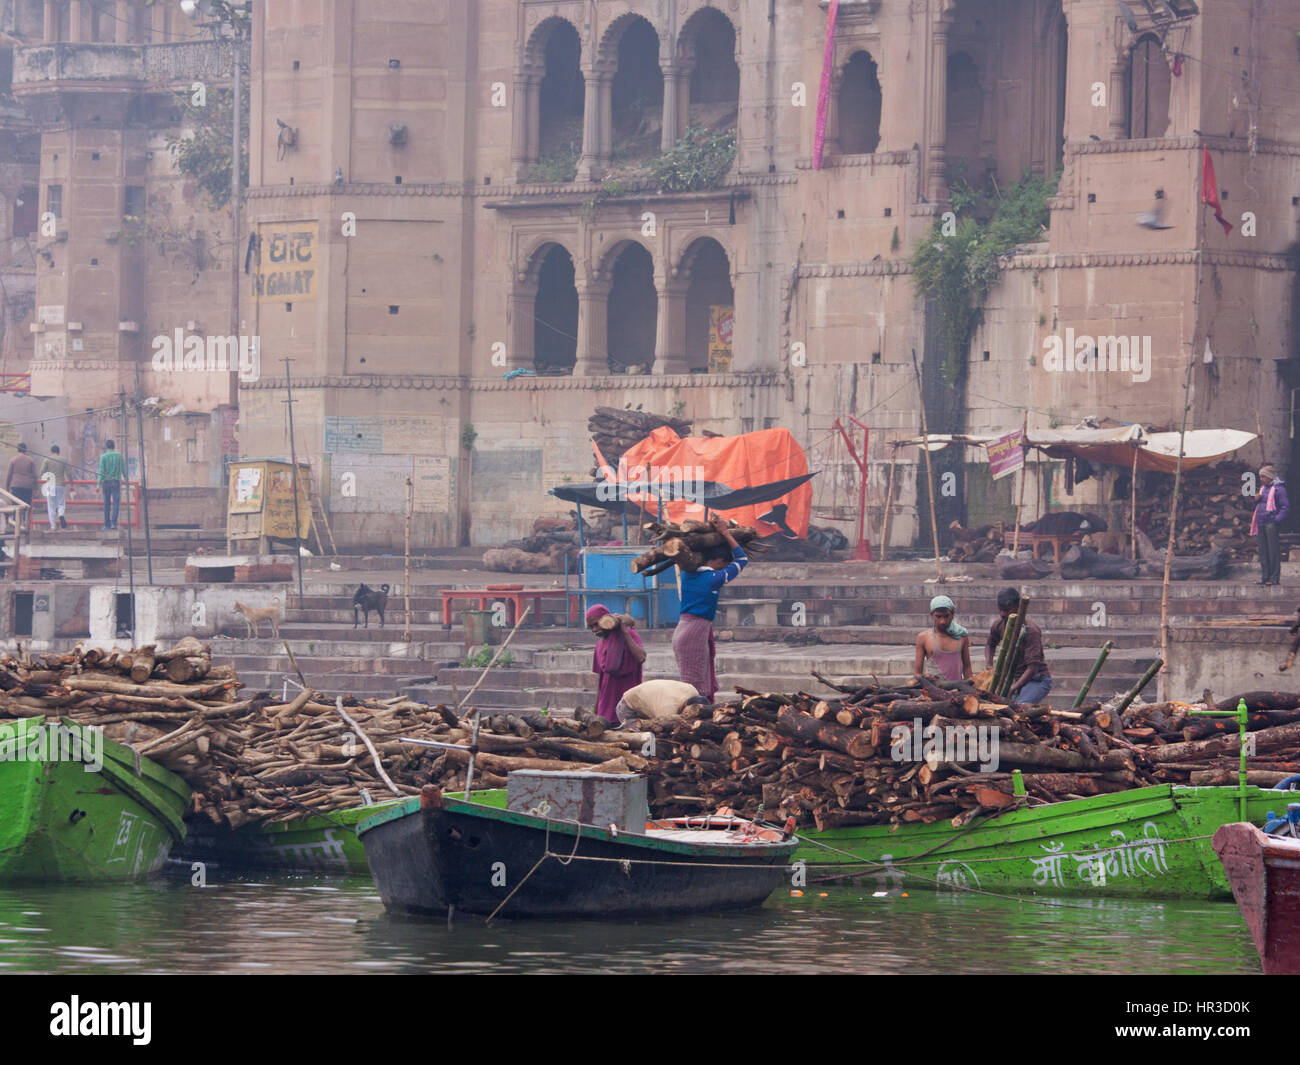 Workers transport wood for building funeral pyres at Manikarnika ghat, Varanasi, on the Ganges in the early morning. - Stock Image